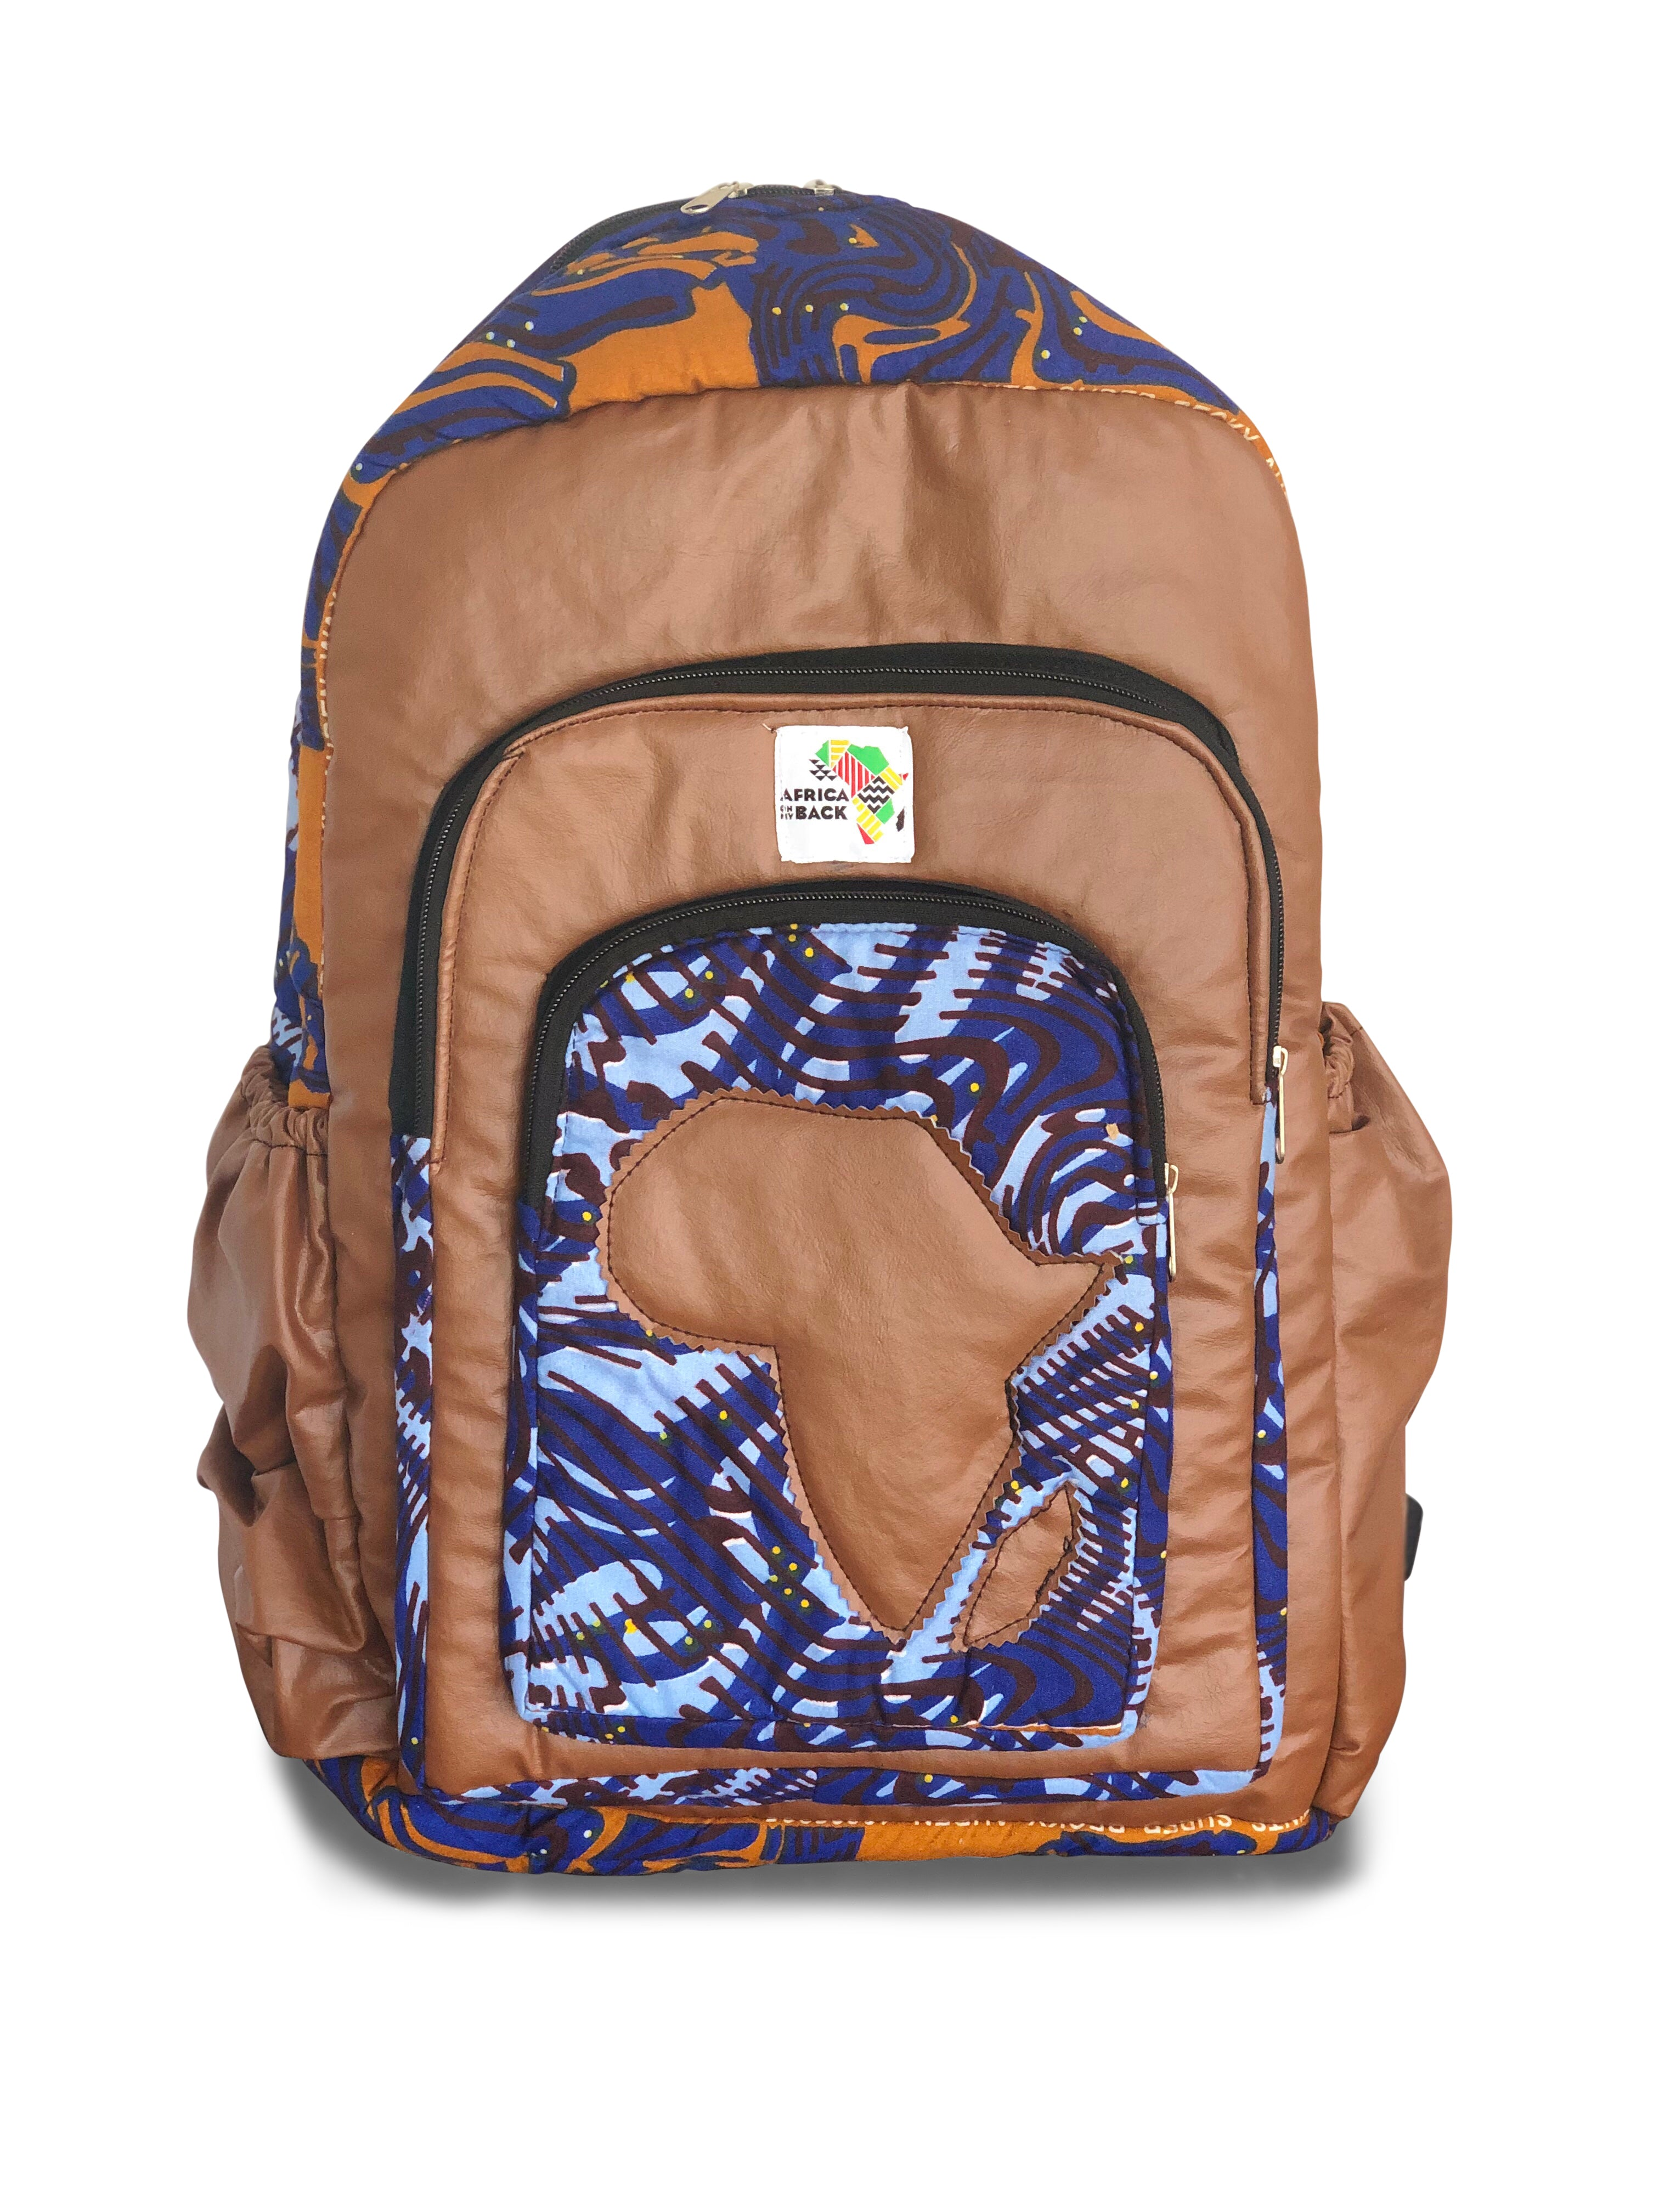 Limited Edition Africa Full Size Backpack (Brown Continent)